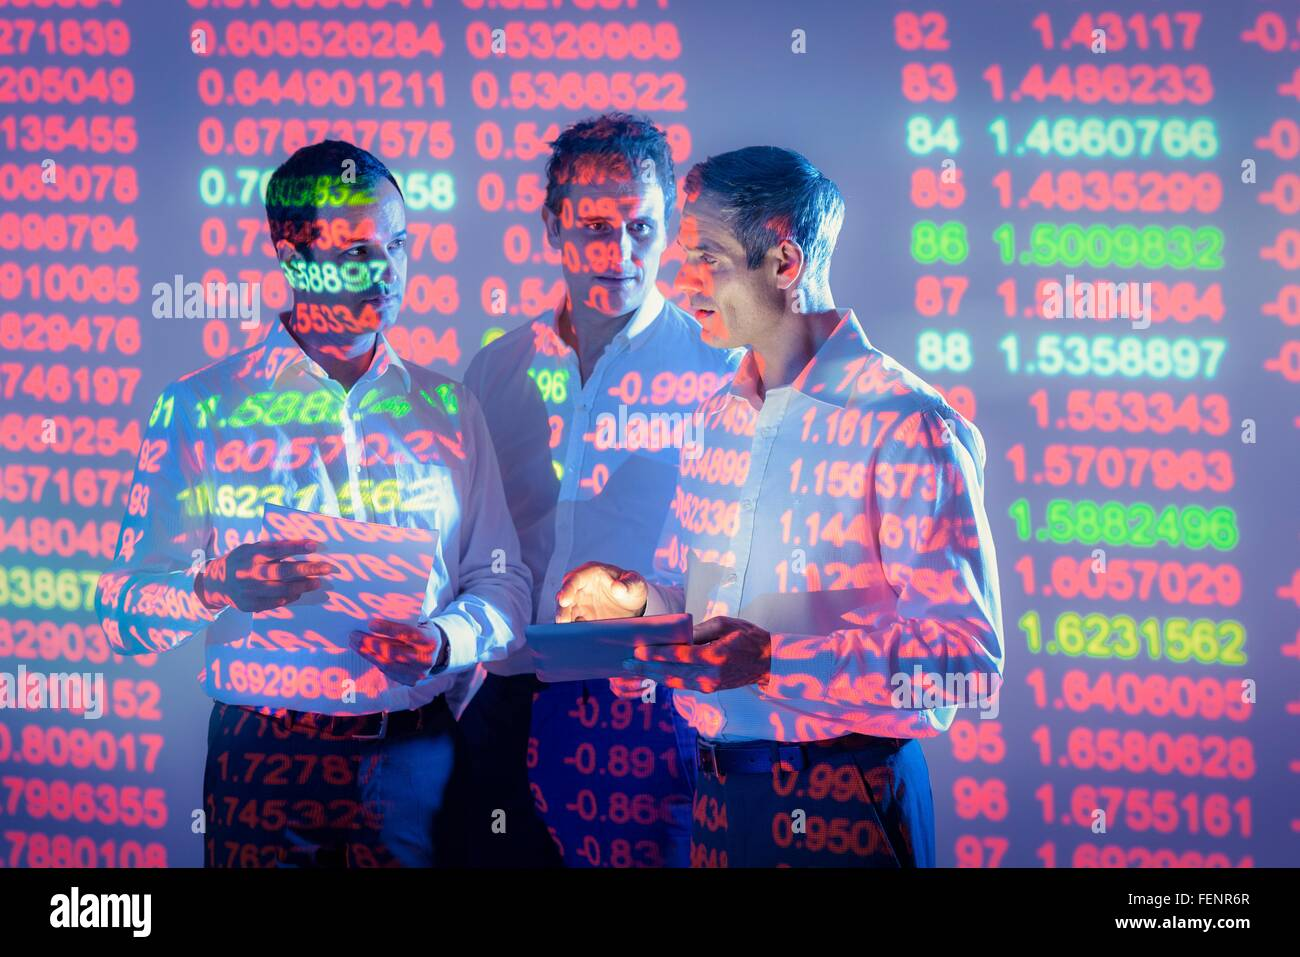 Businessmen in conversation with projected graphical financial data - Stock Image